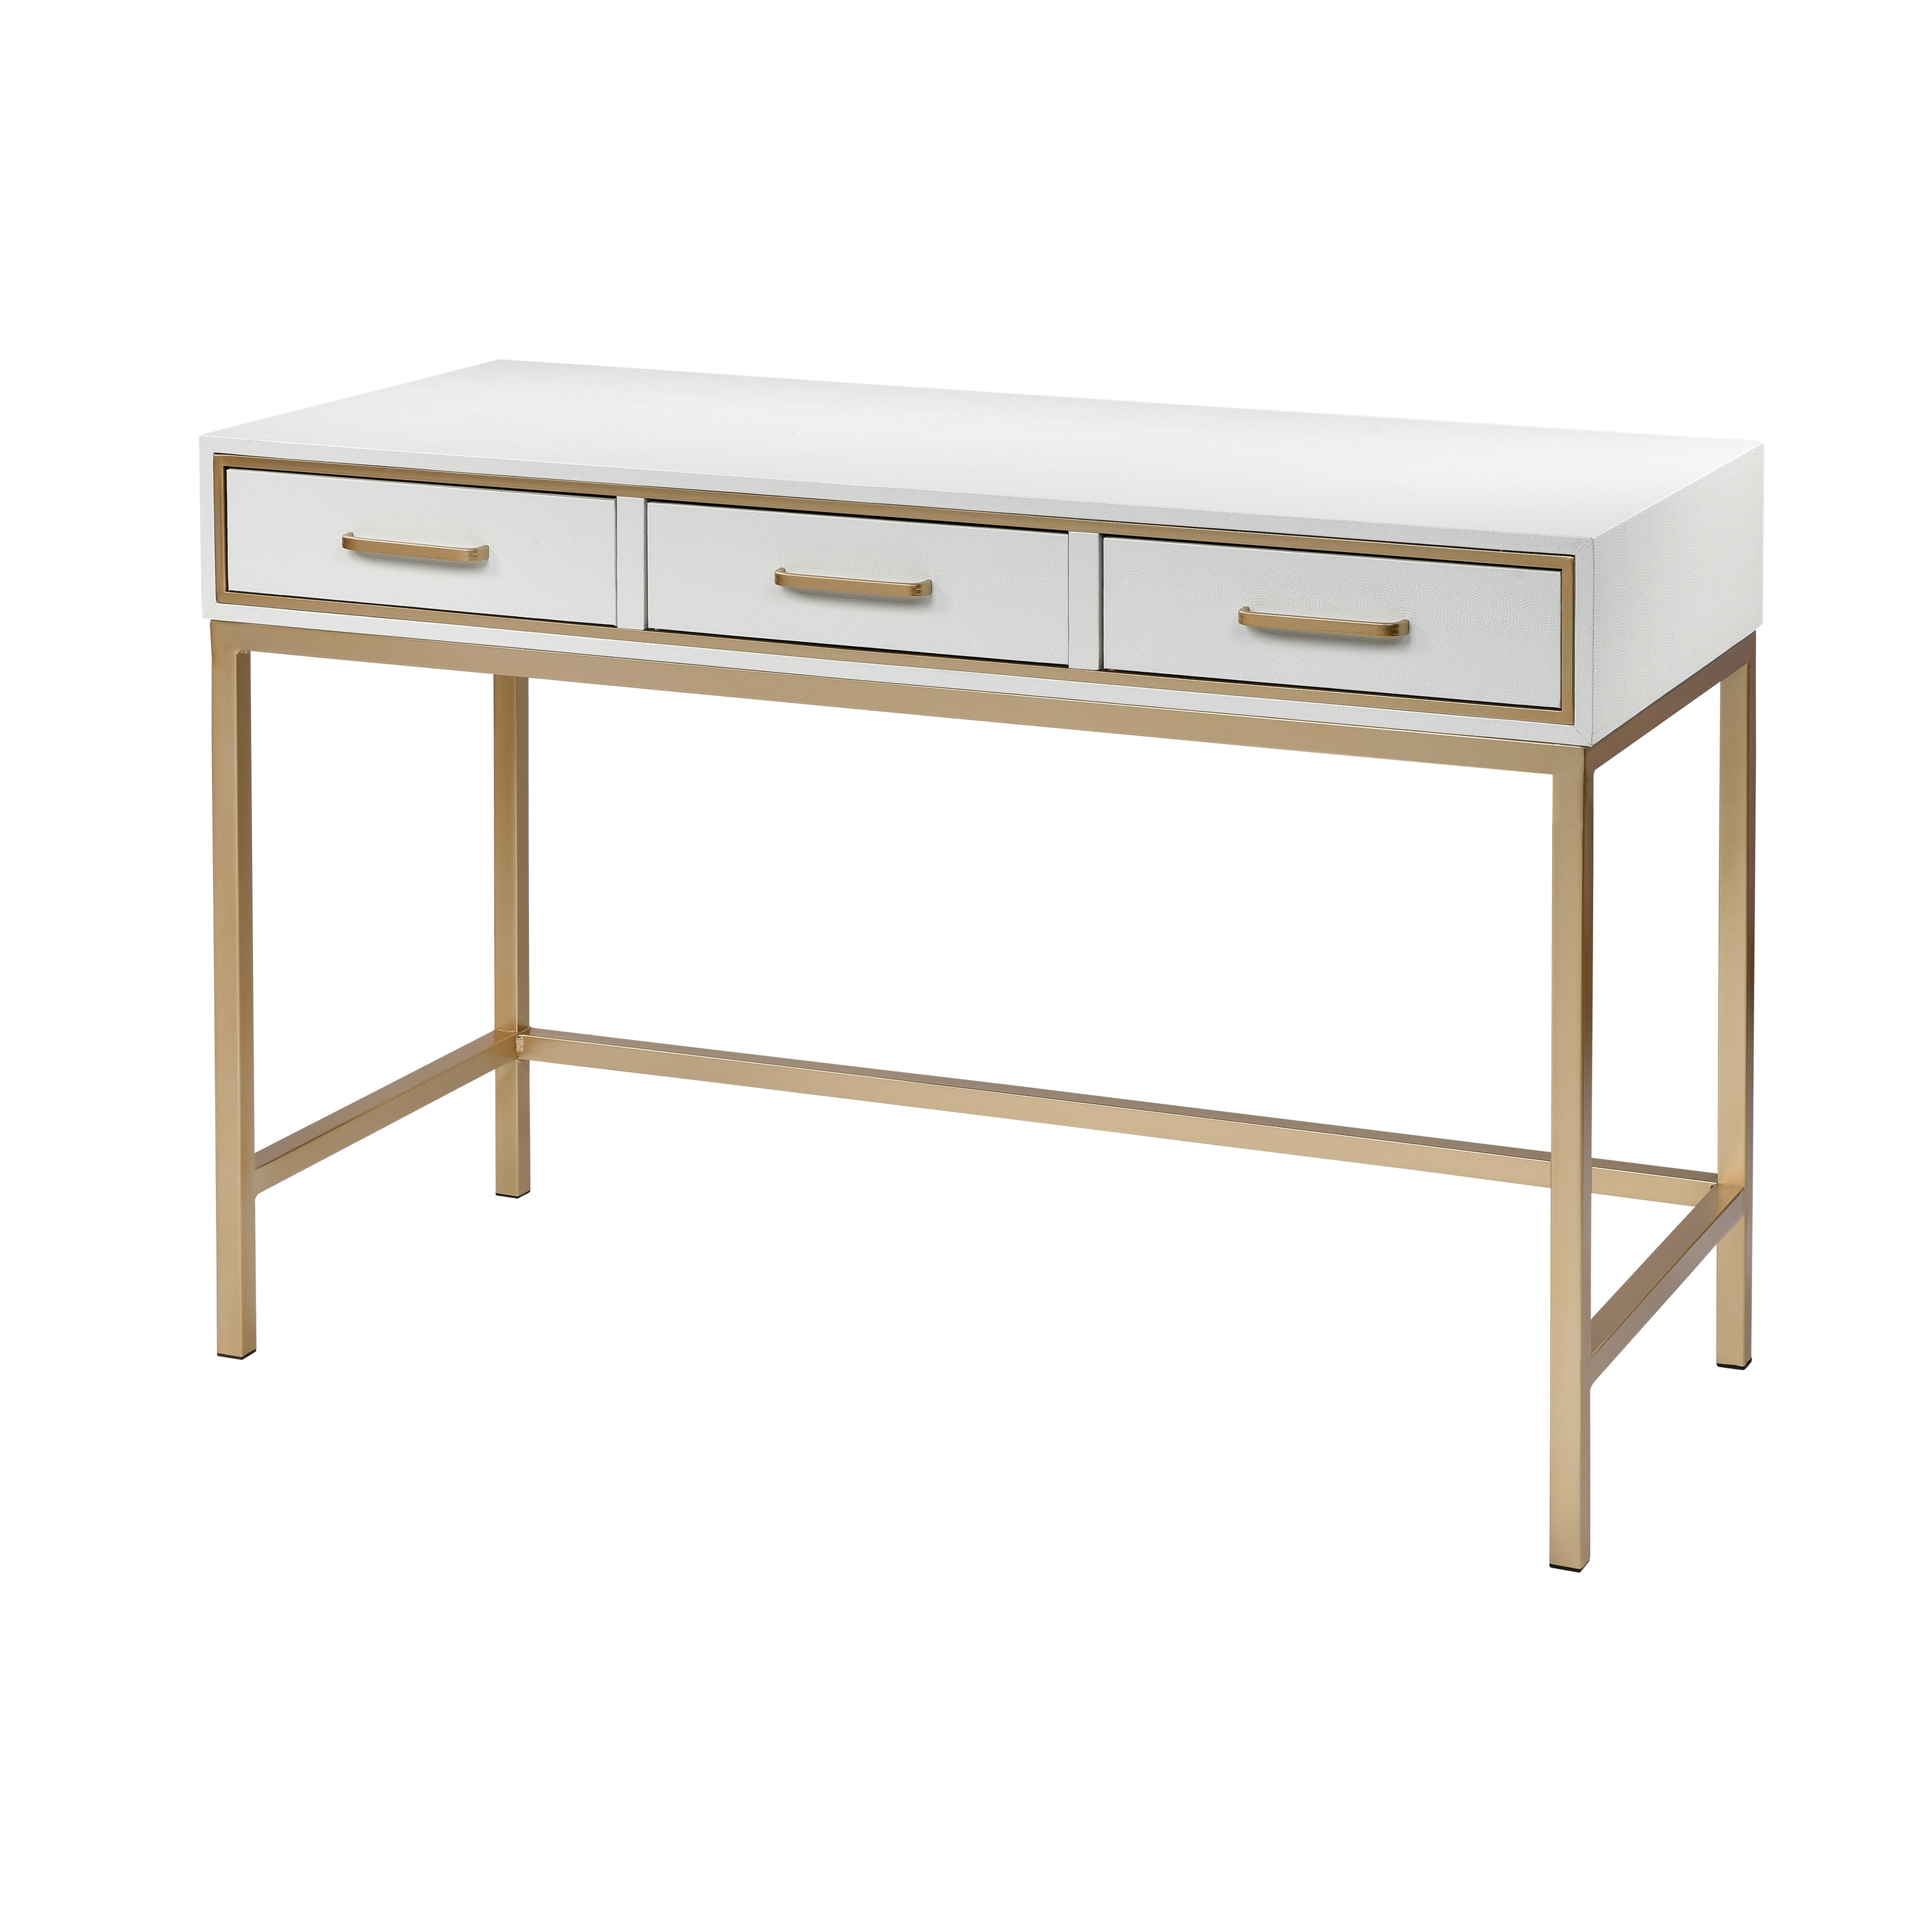 Sands Point 3-Drawer Desk in Off-White and Gold | Elk Home